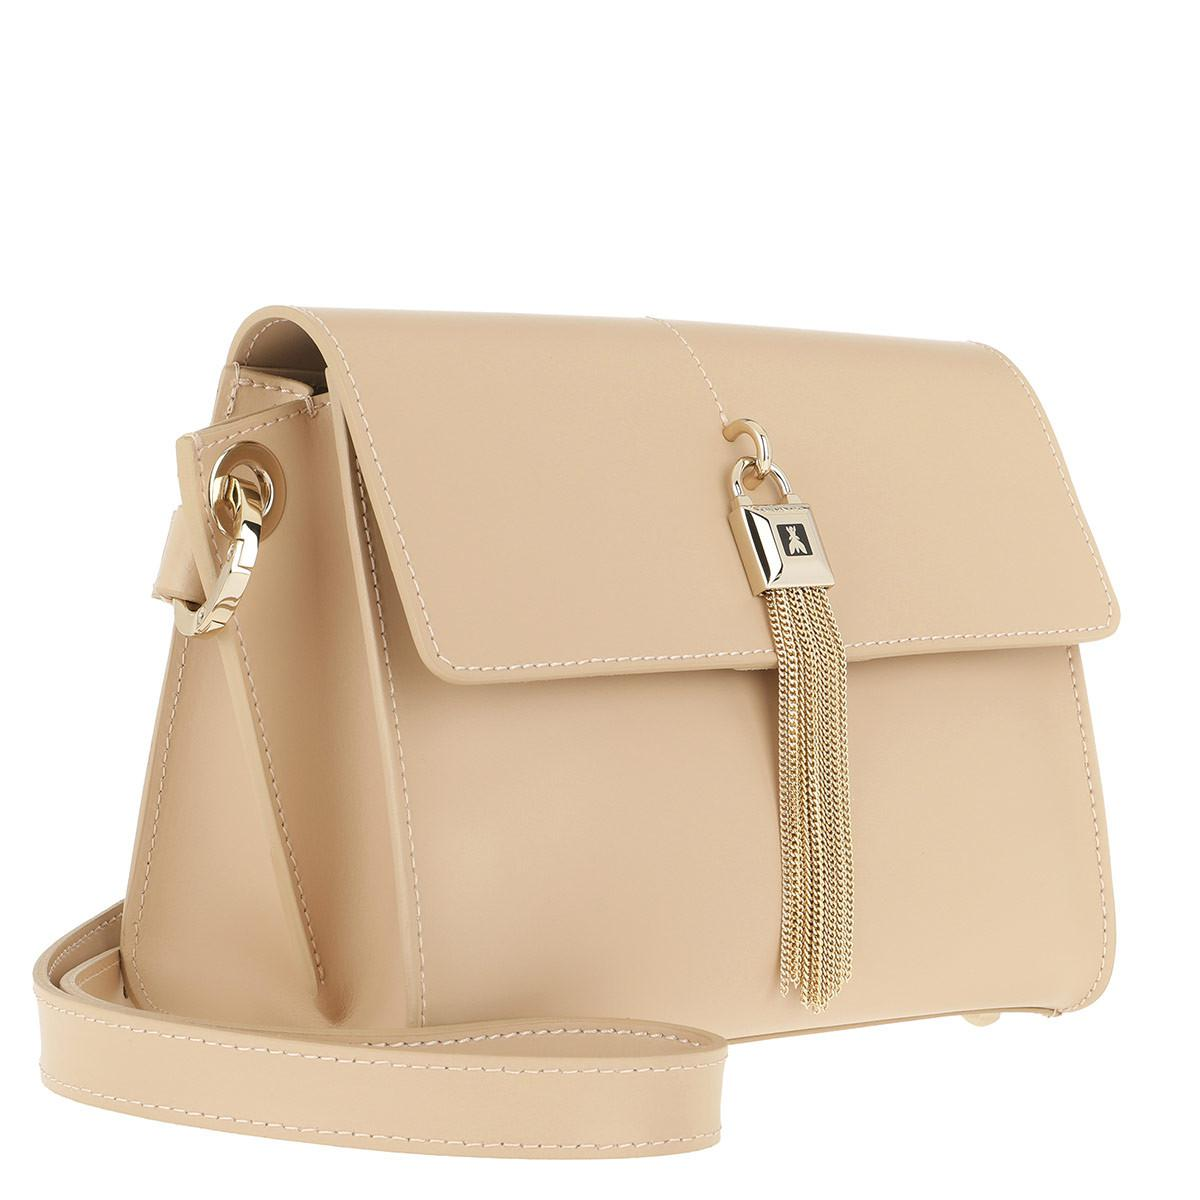 47eaca2fe88d Patrizia Pepe - Natural Crossbody Bag Camel Beige - Lyst. View fullscreen